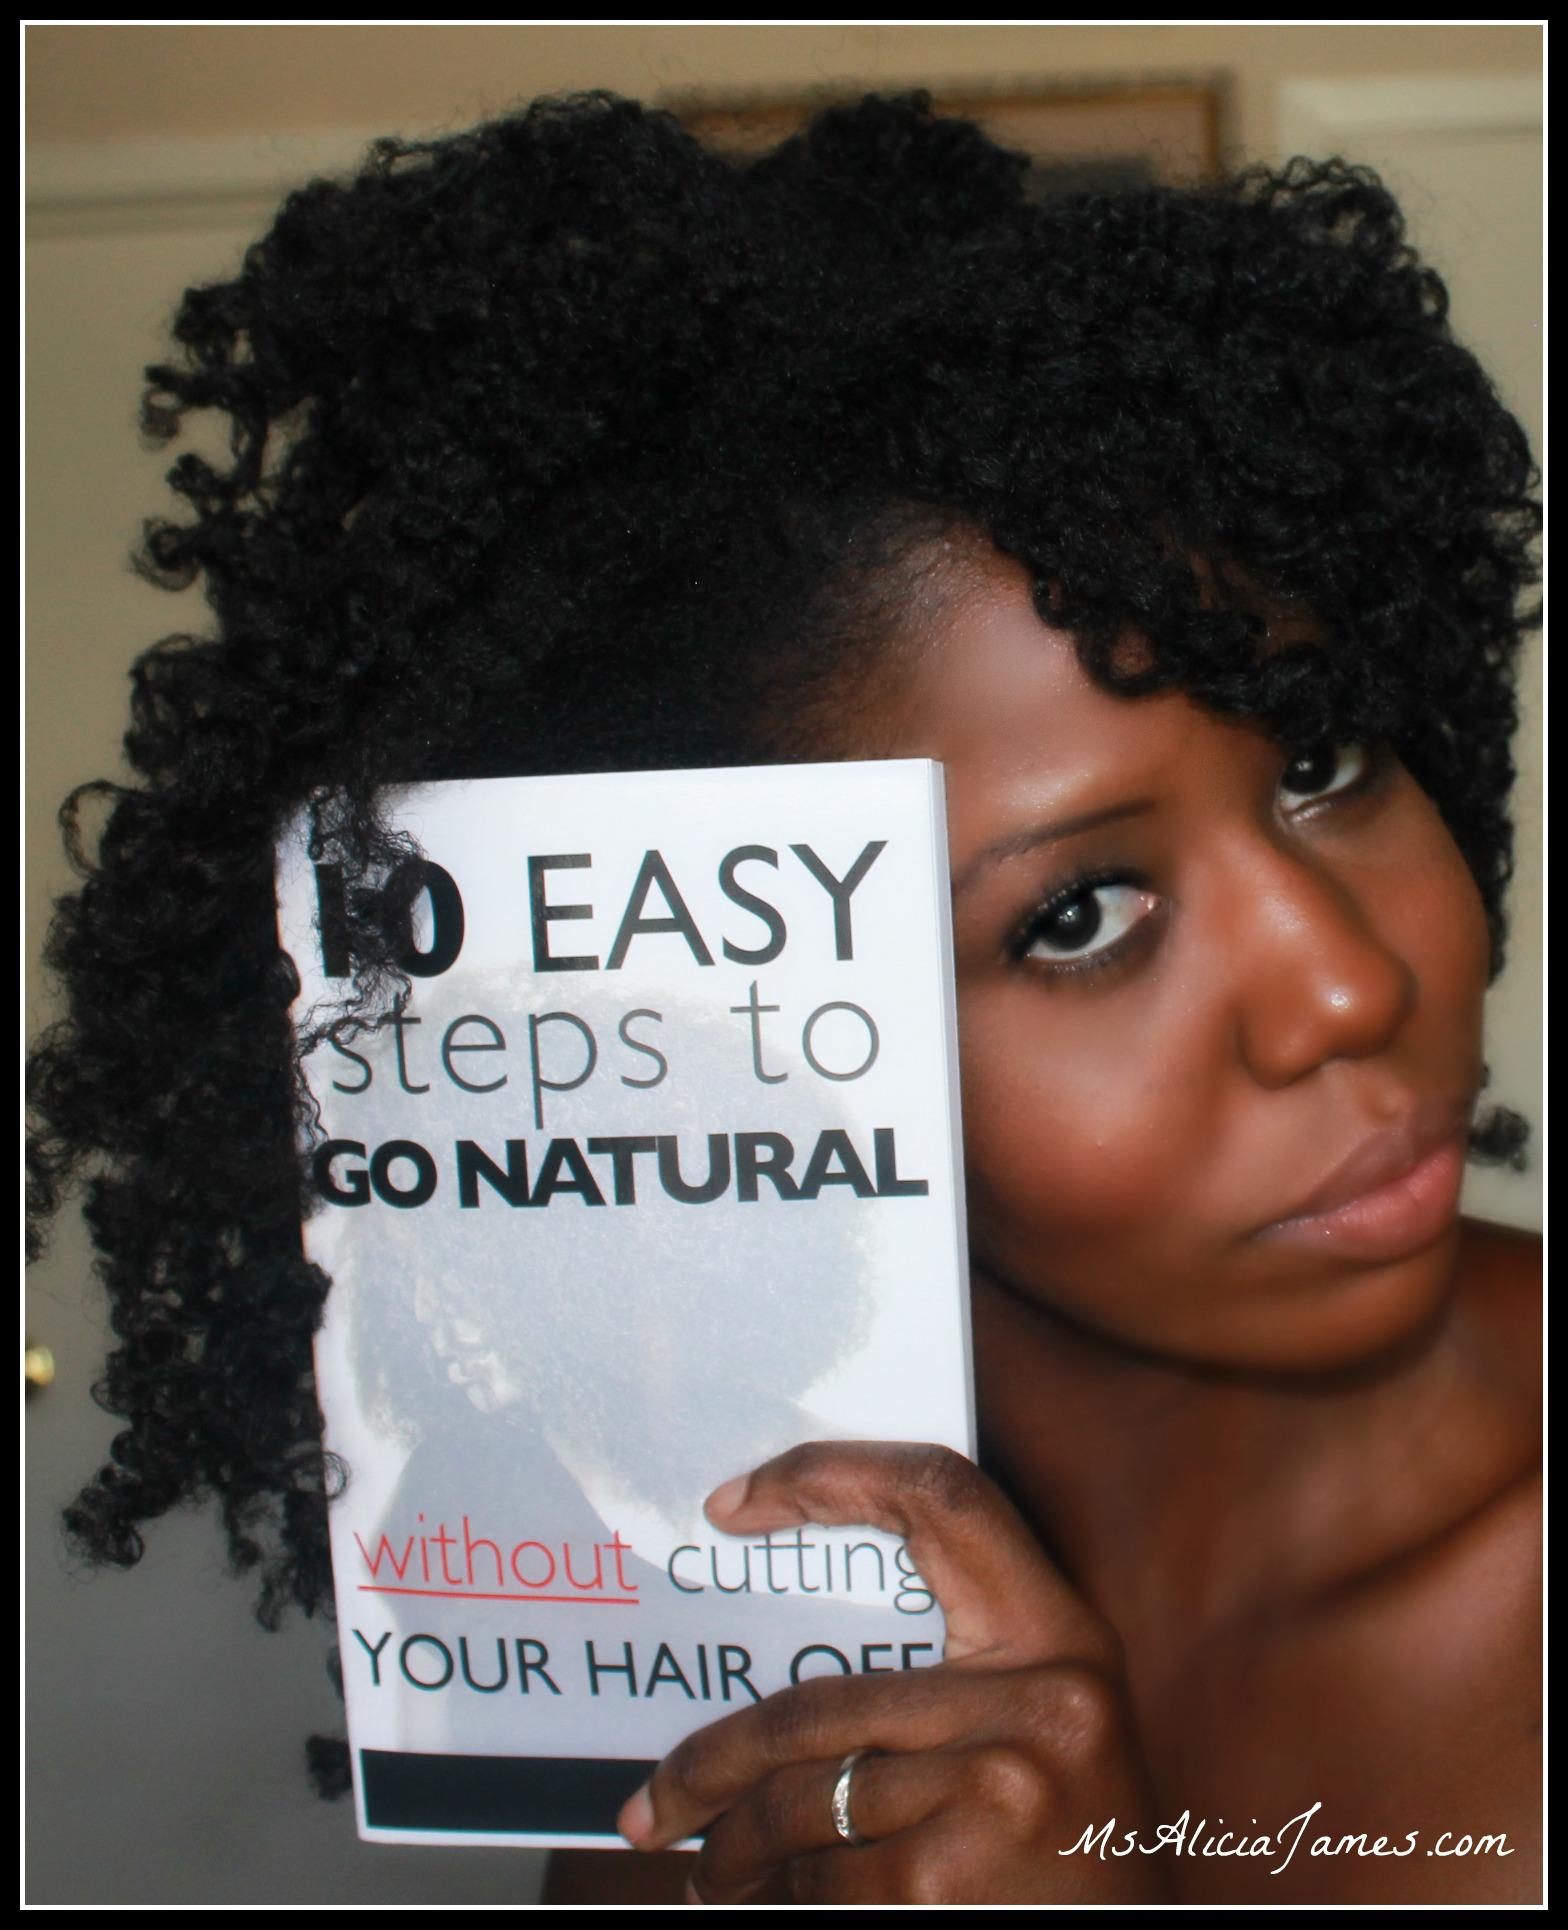 11 Easy Steps To Go Natural WITHOUT Cutting Your Hair Off! – Nik